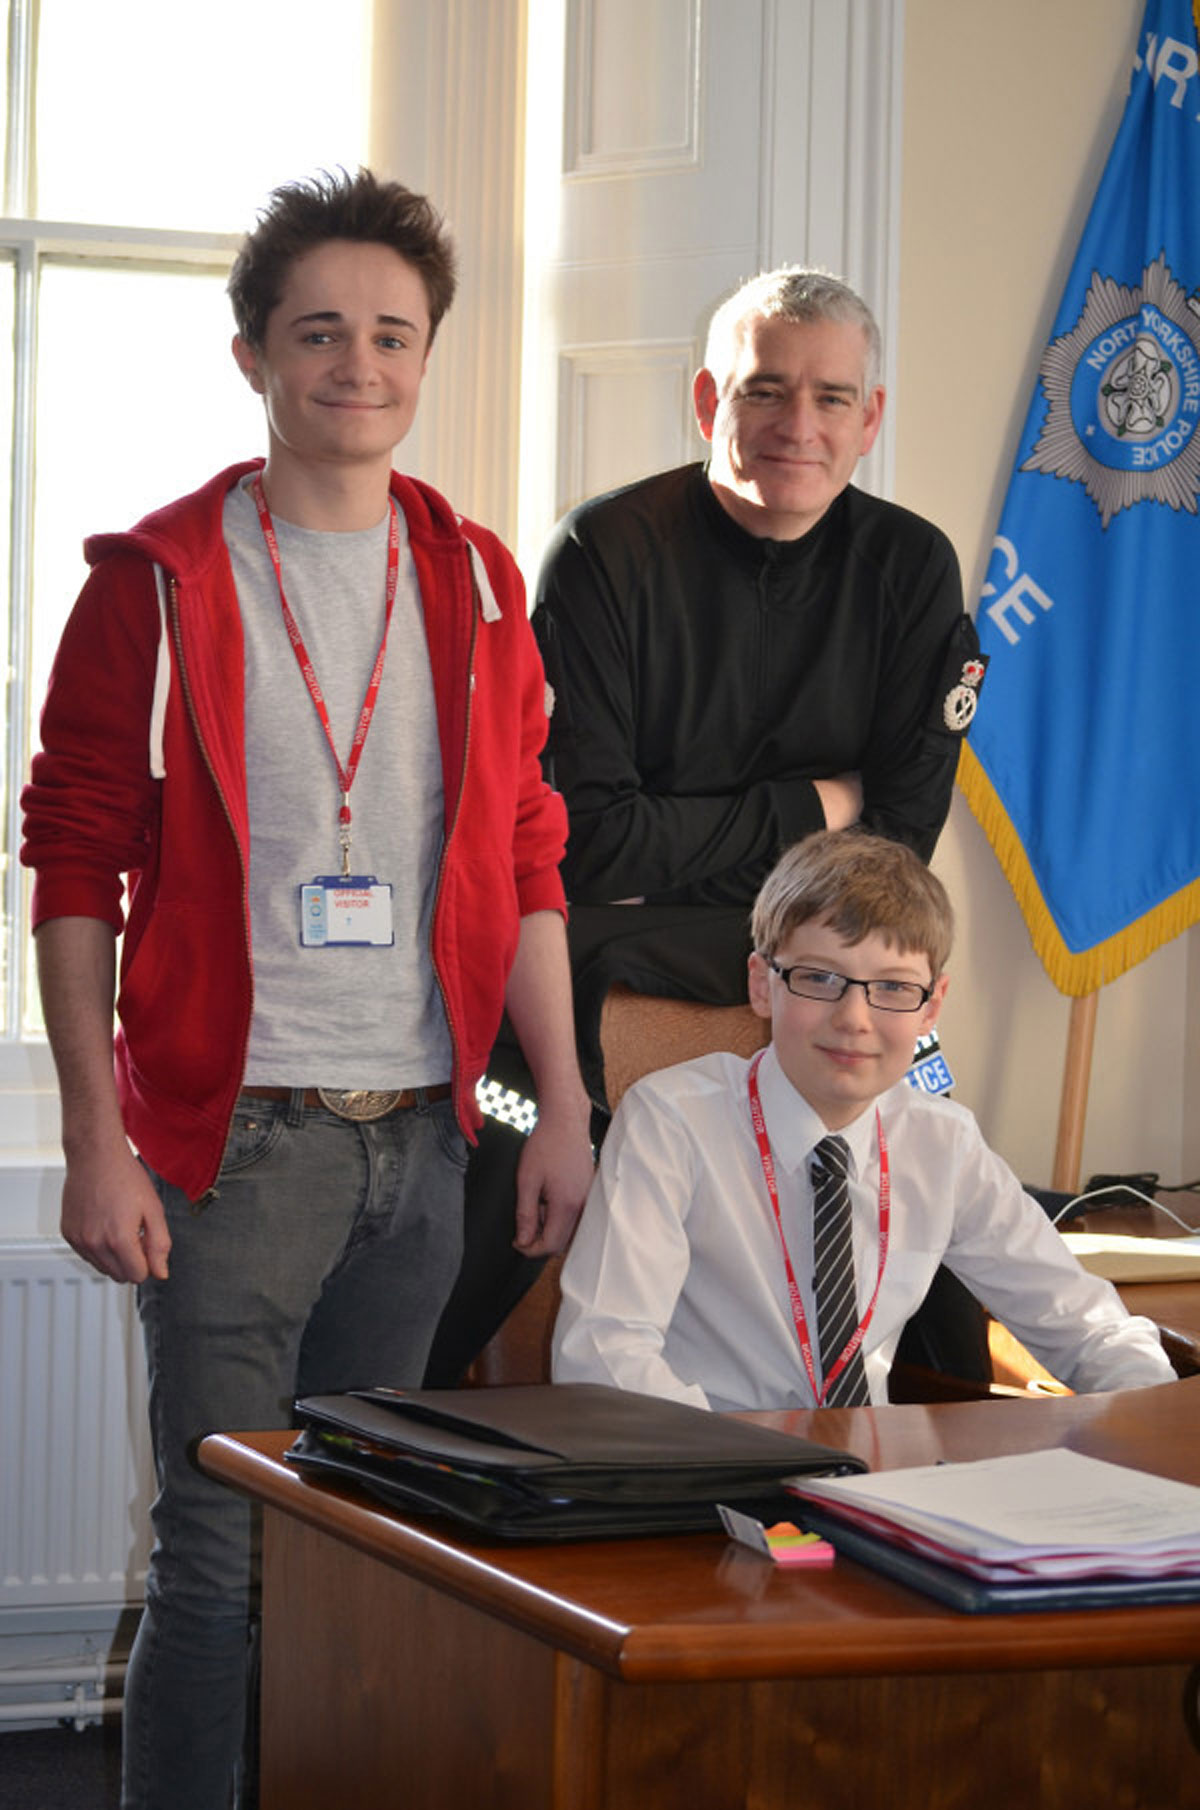 Chief Constable Dave Jones lets two pupils takeover his office